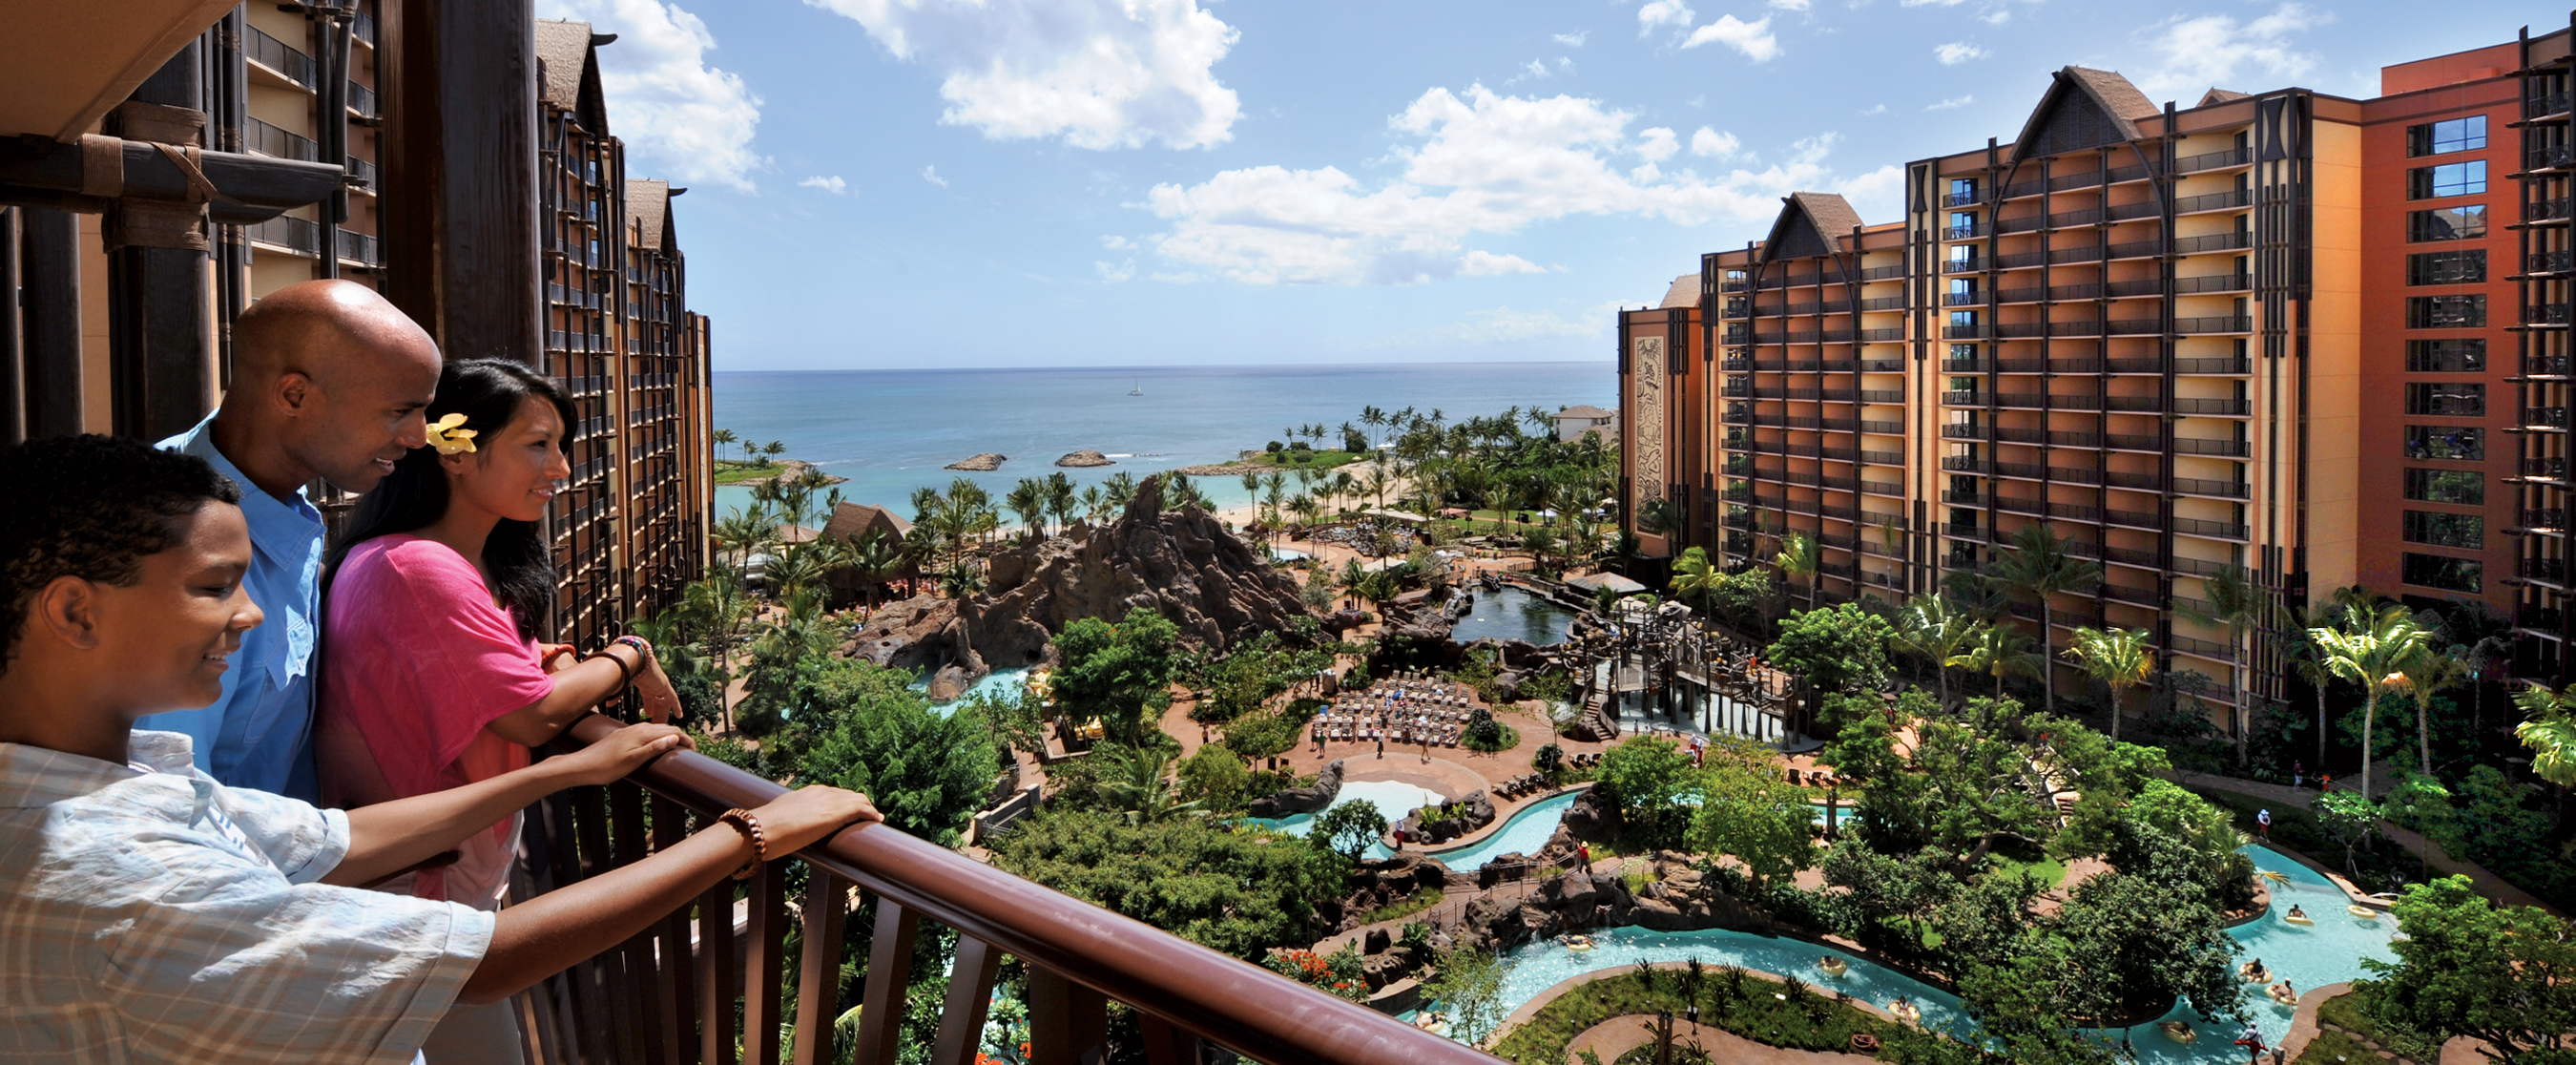 A family looks over the balcony at the Aulani pool area